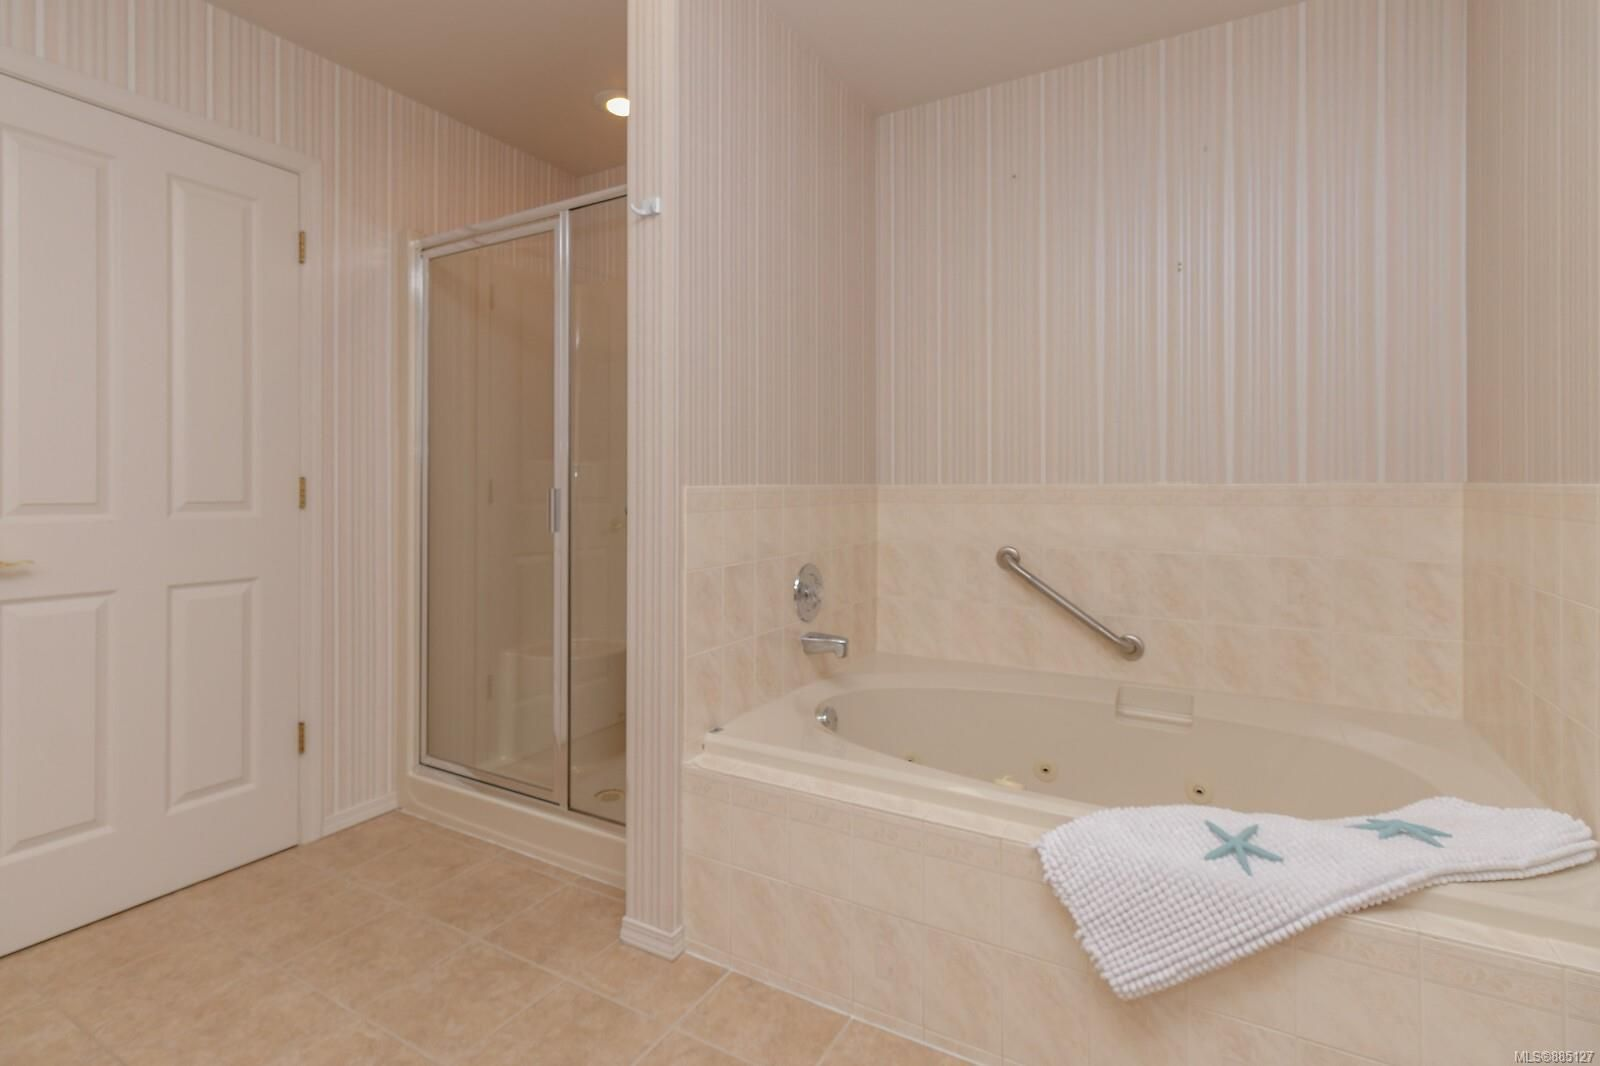 Photo 35: Photos: 26 529 Johnstone Rd in : PQ French Creek Row/Townhouse for sale (Parksville/Qualicum)  : MLS®# 885127